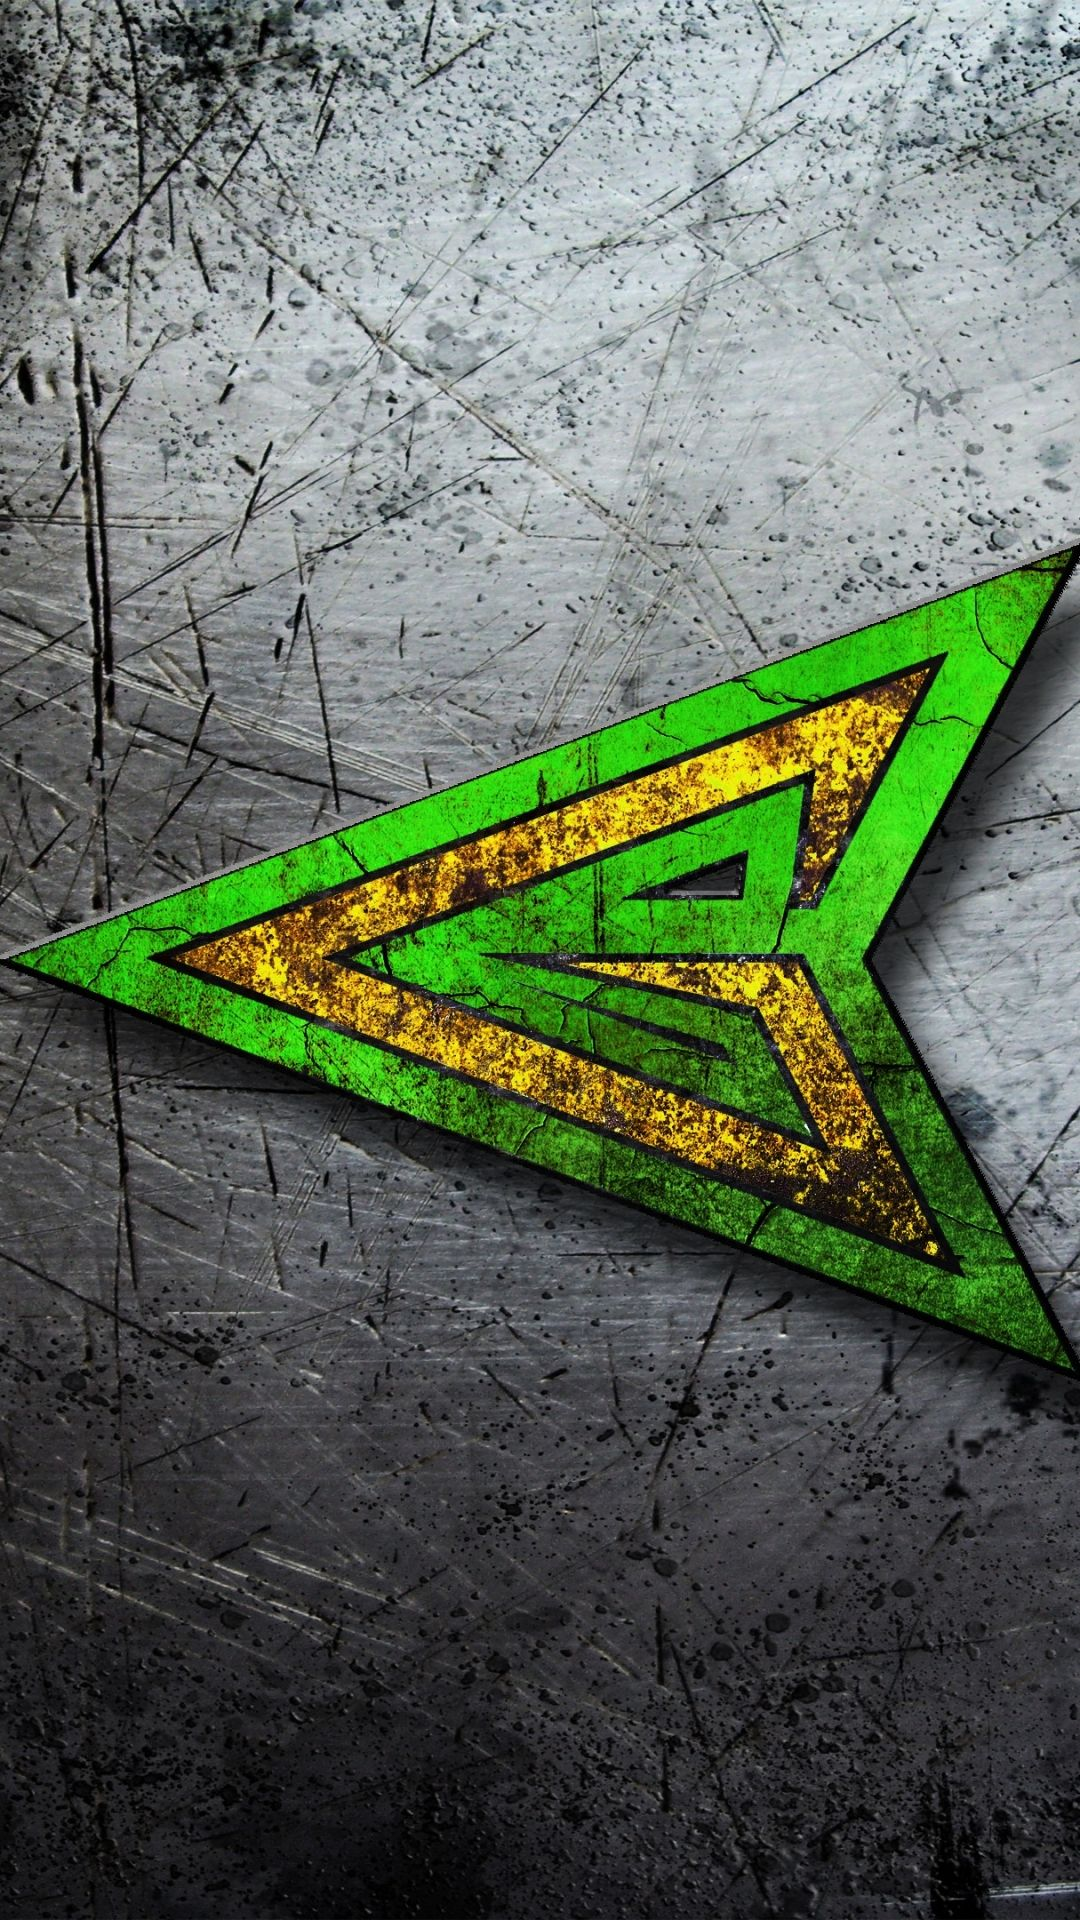 HD Arrow Wallpaper for Android. in 2020 Iphone wallpaper